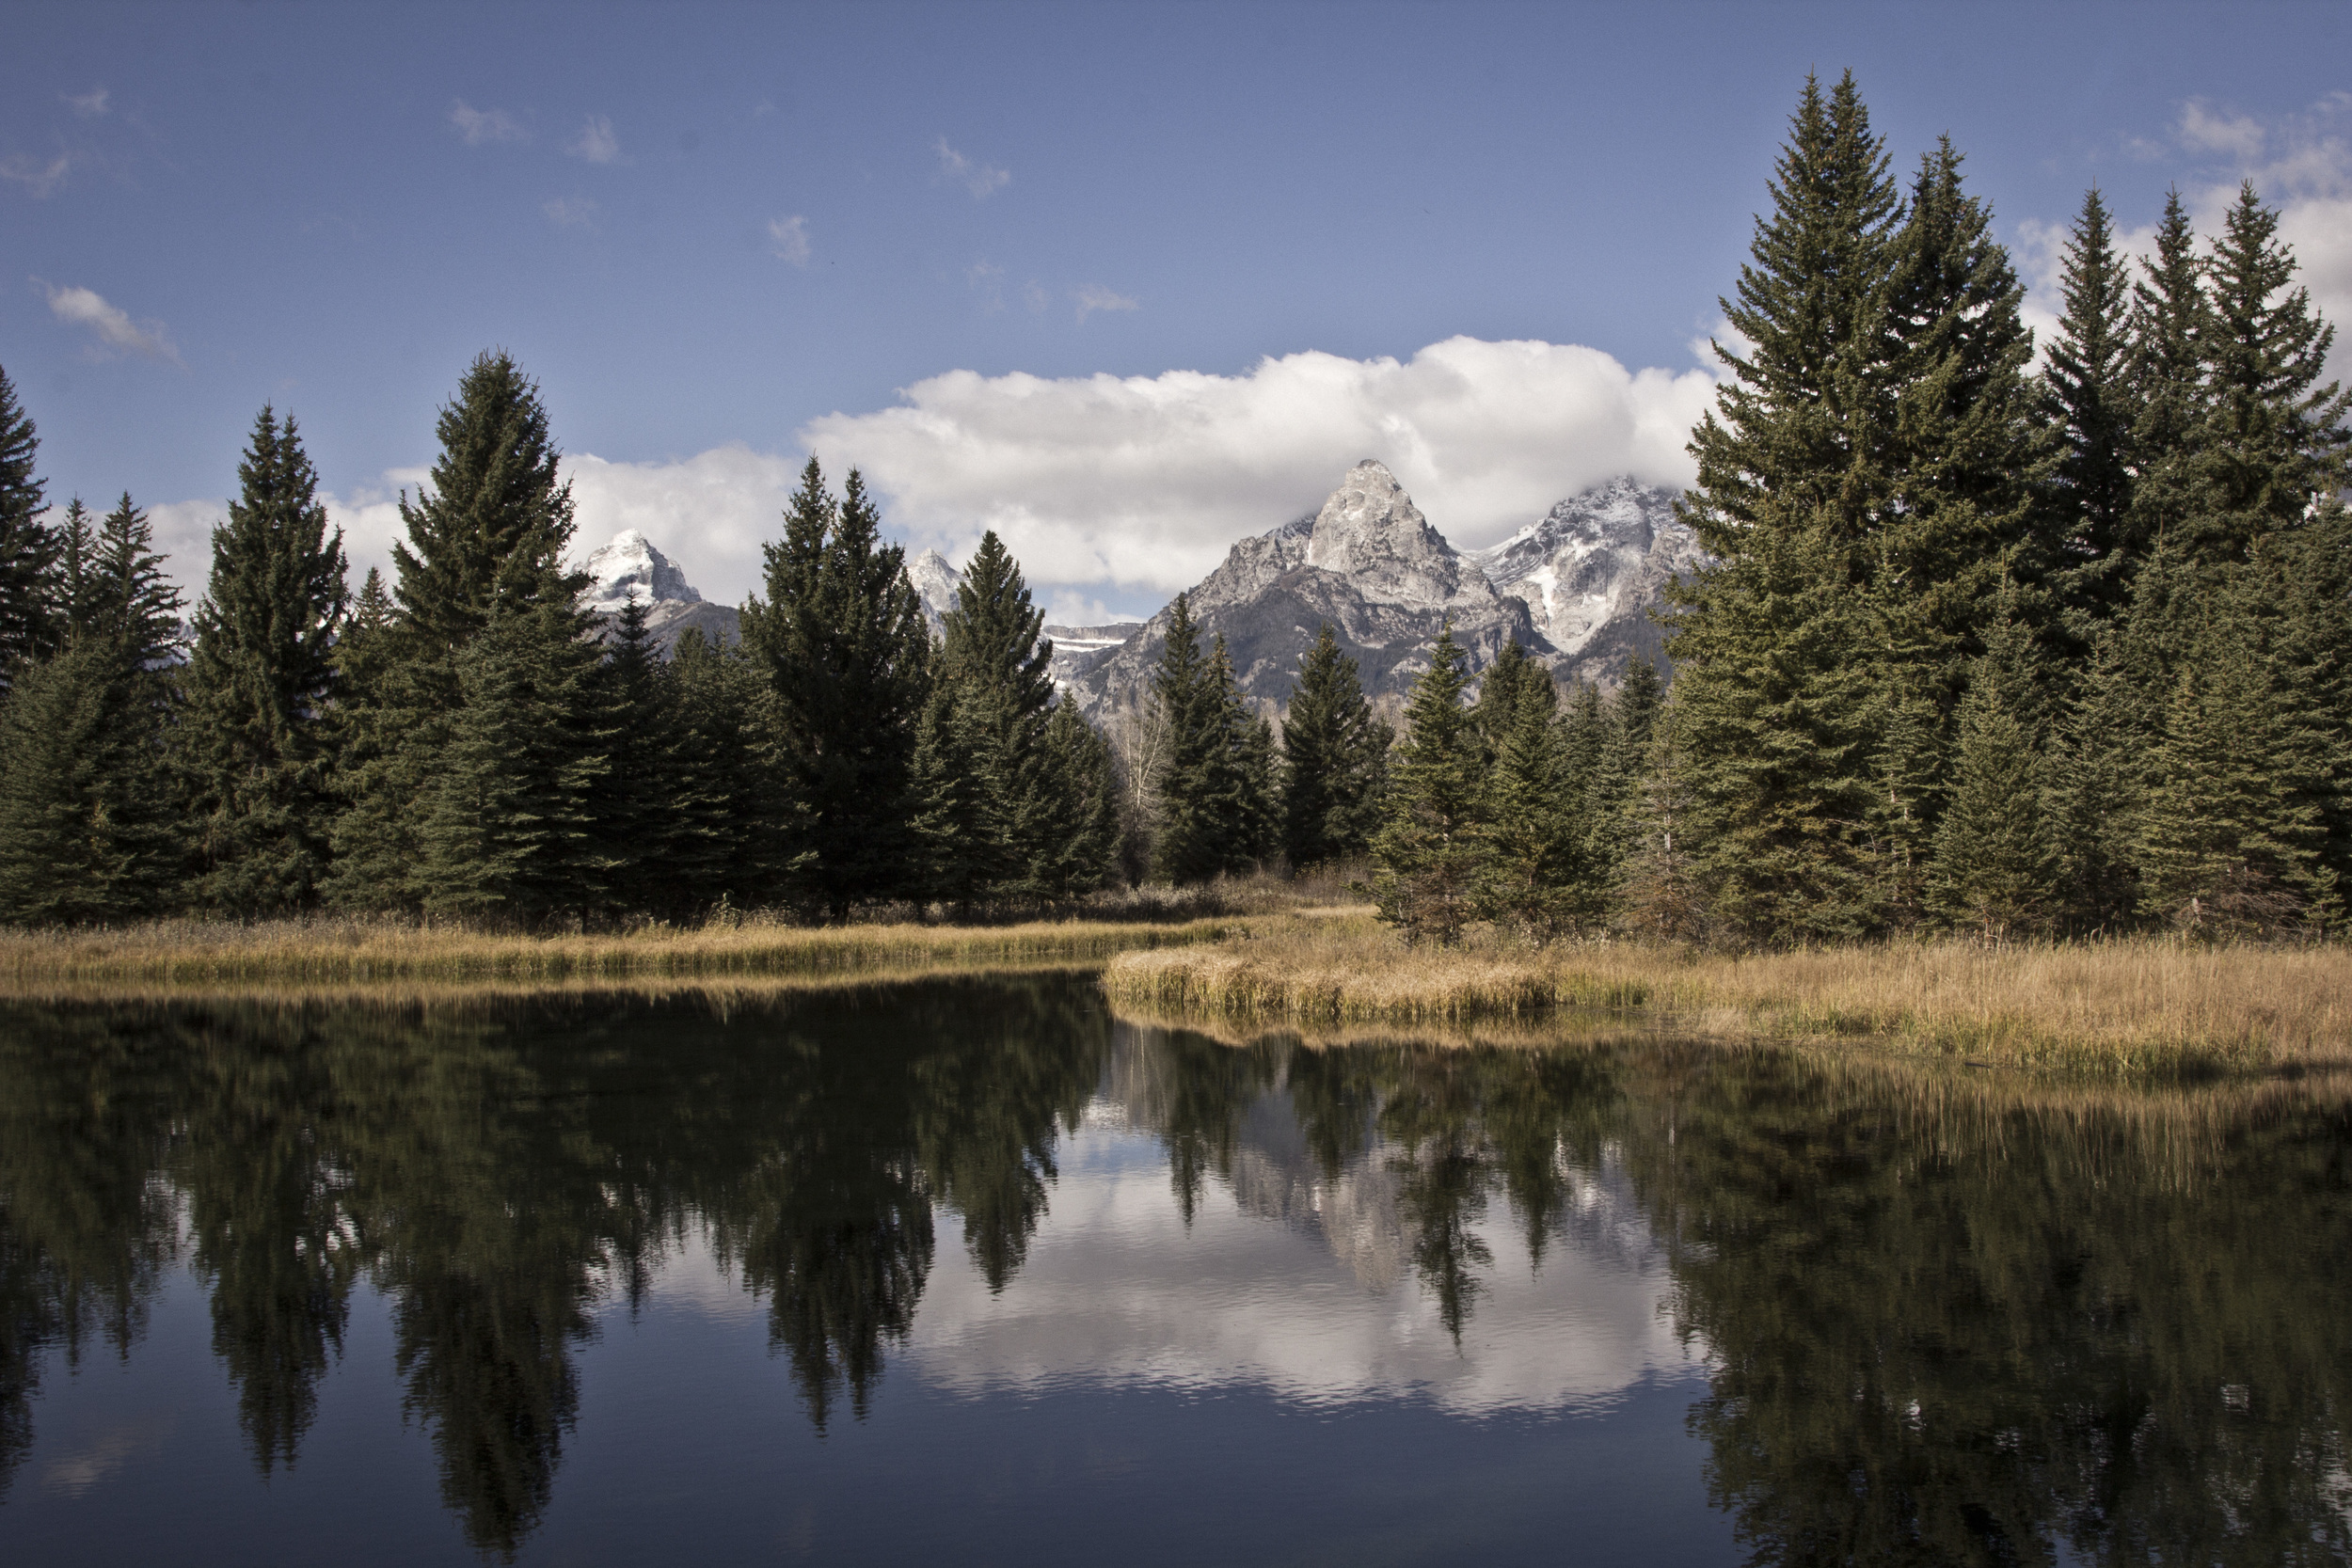 Reflecting the Tetons